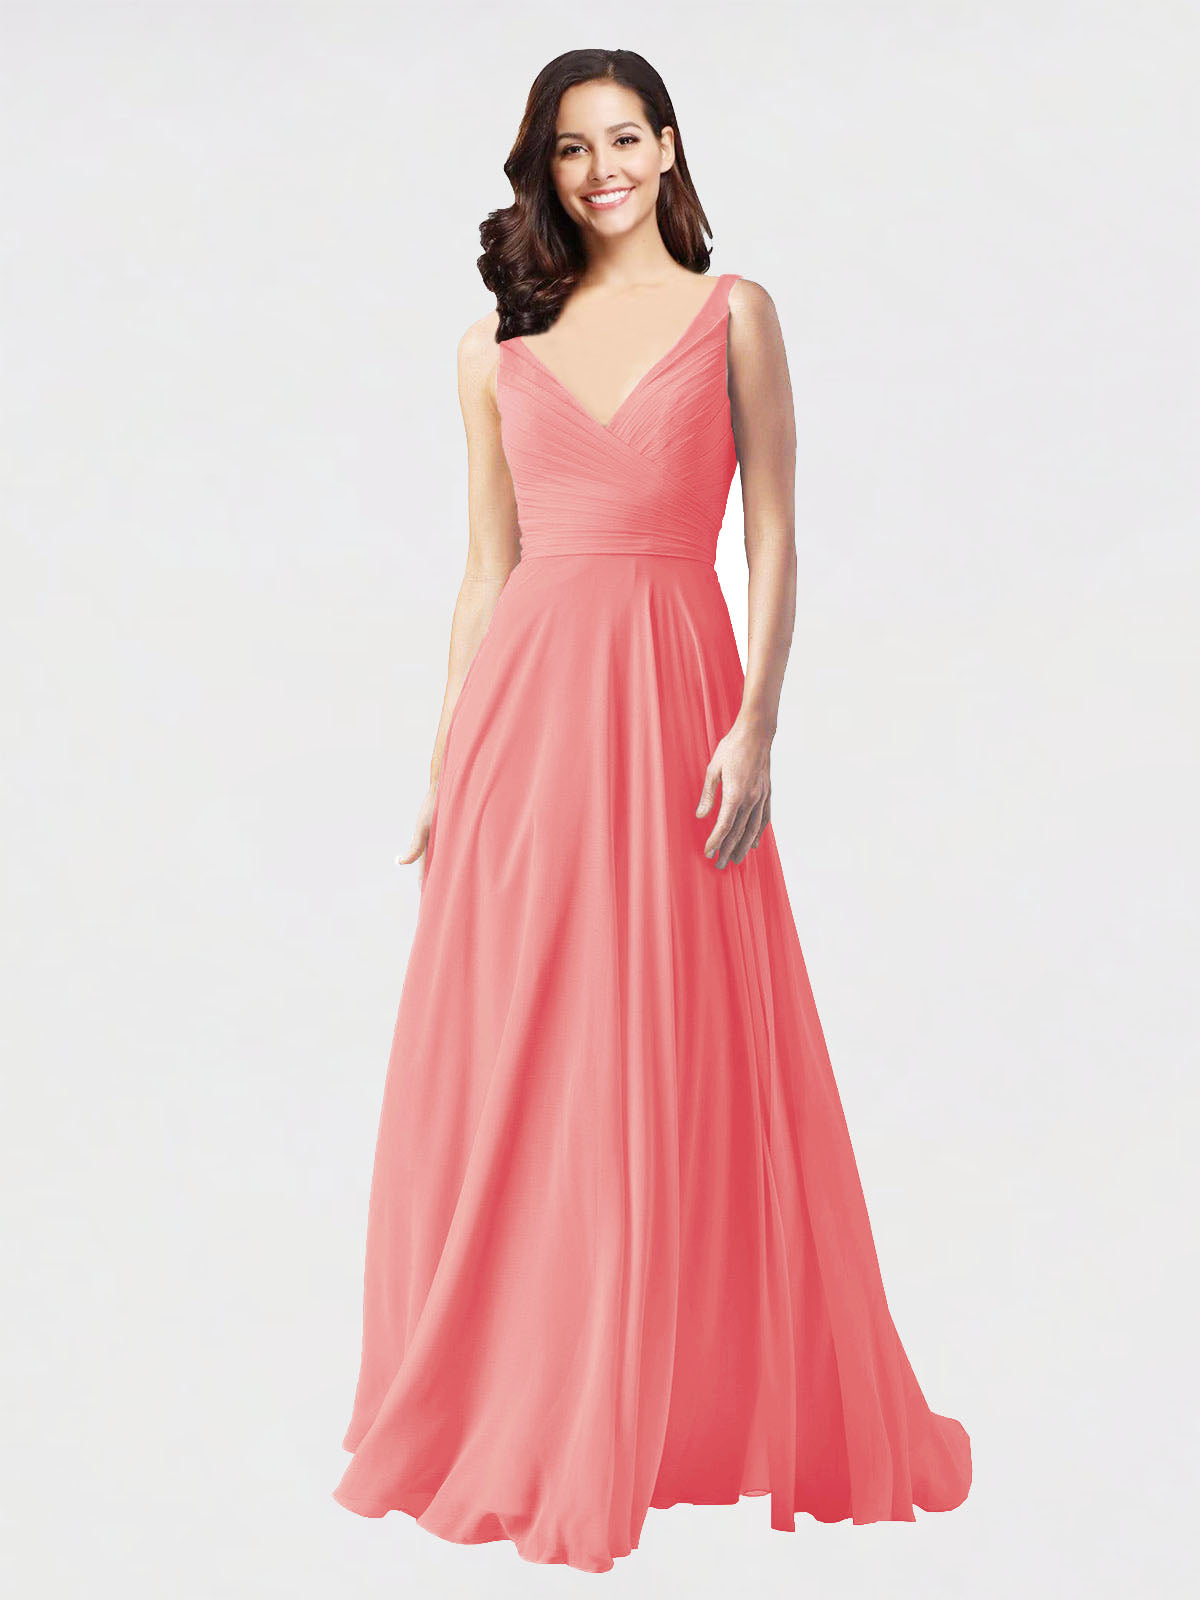 Long A-Line V-Neck Sleeveless Watermelon Chiffon Bridesmaid Dress Bernice